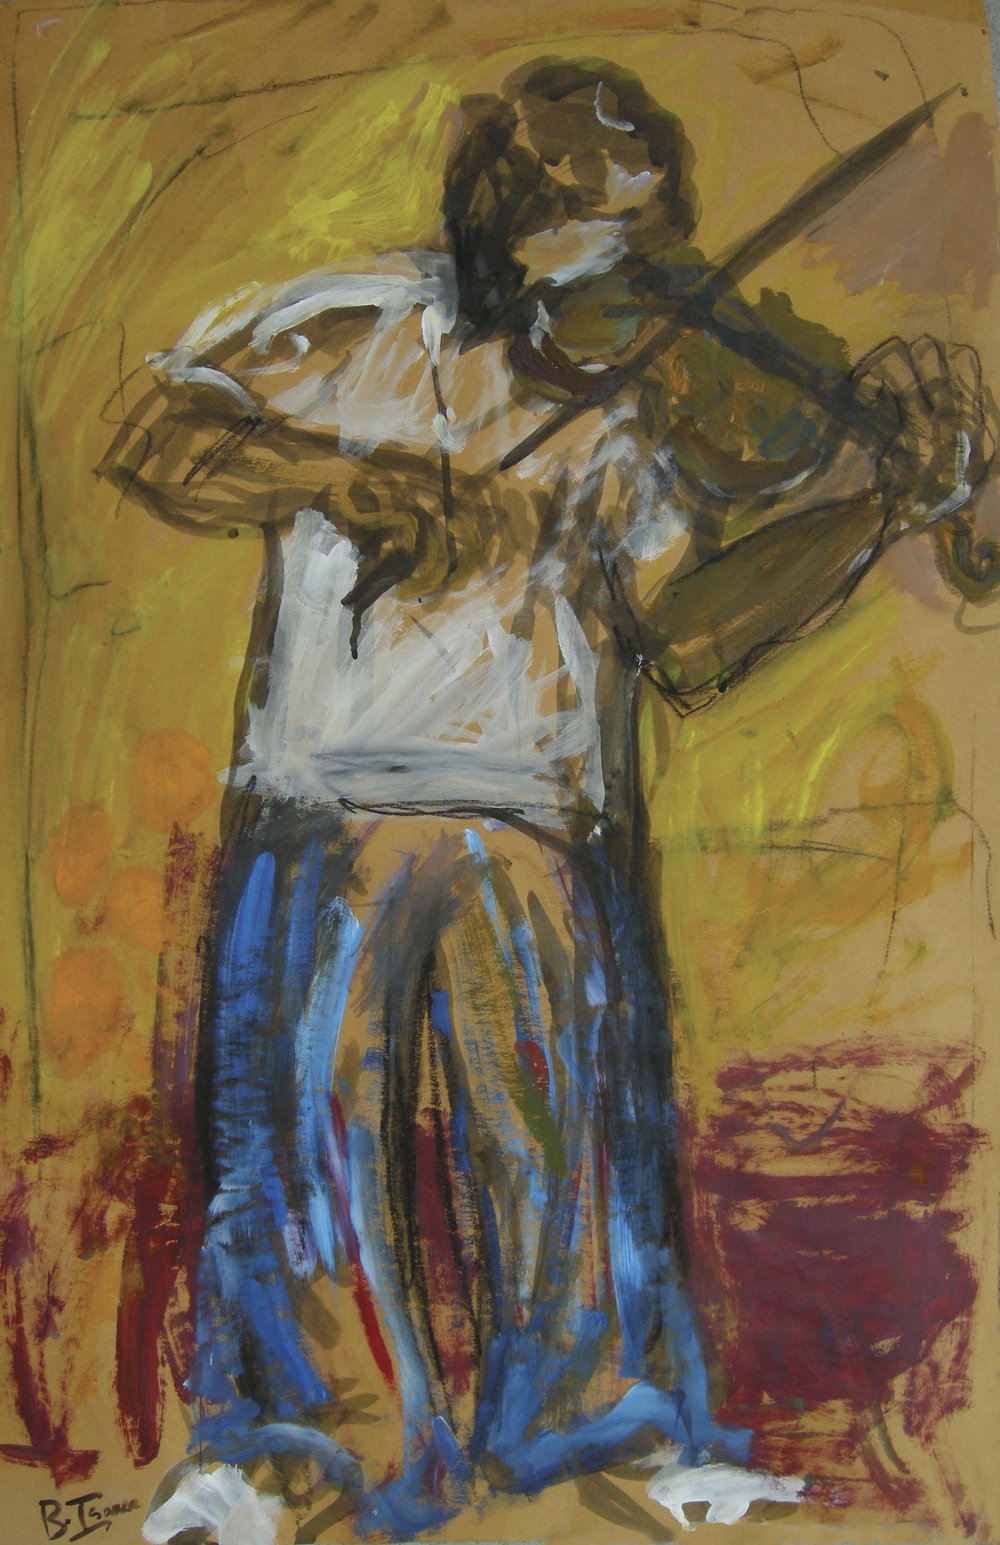 THE VIOLINIST Mixed Media on Card | 79 x 101 cm (framed) |2009 SOLD (Mexico)